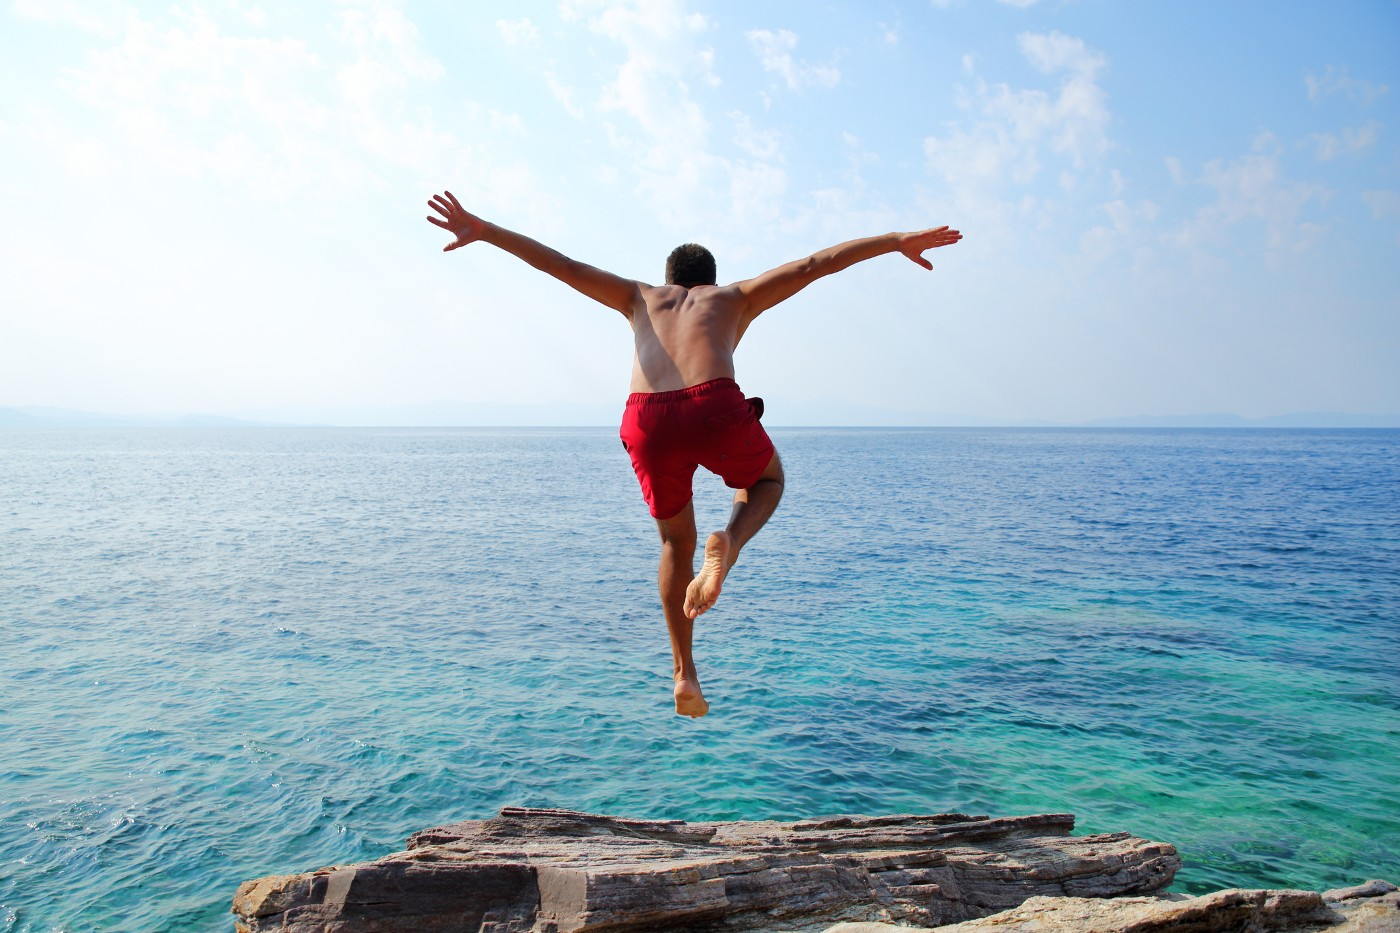 https://tickertapecdn.tdameritrade.com/assets/images/pages/md/Man leaping into the ocean: Long-Term Equity AnticiPation Securities